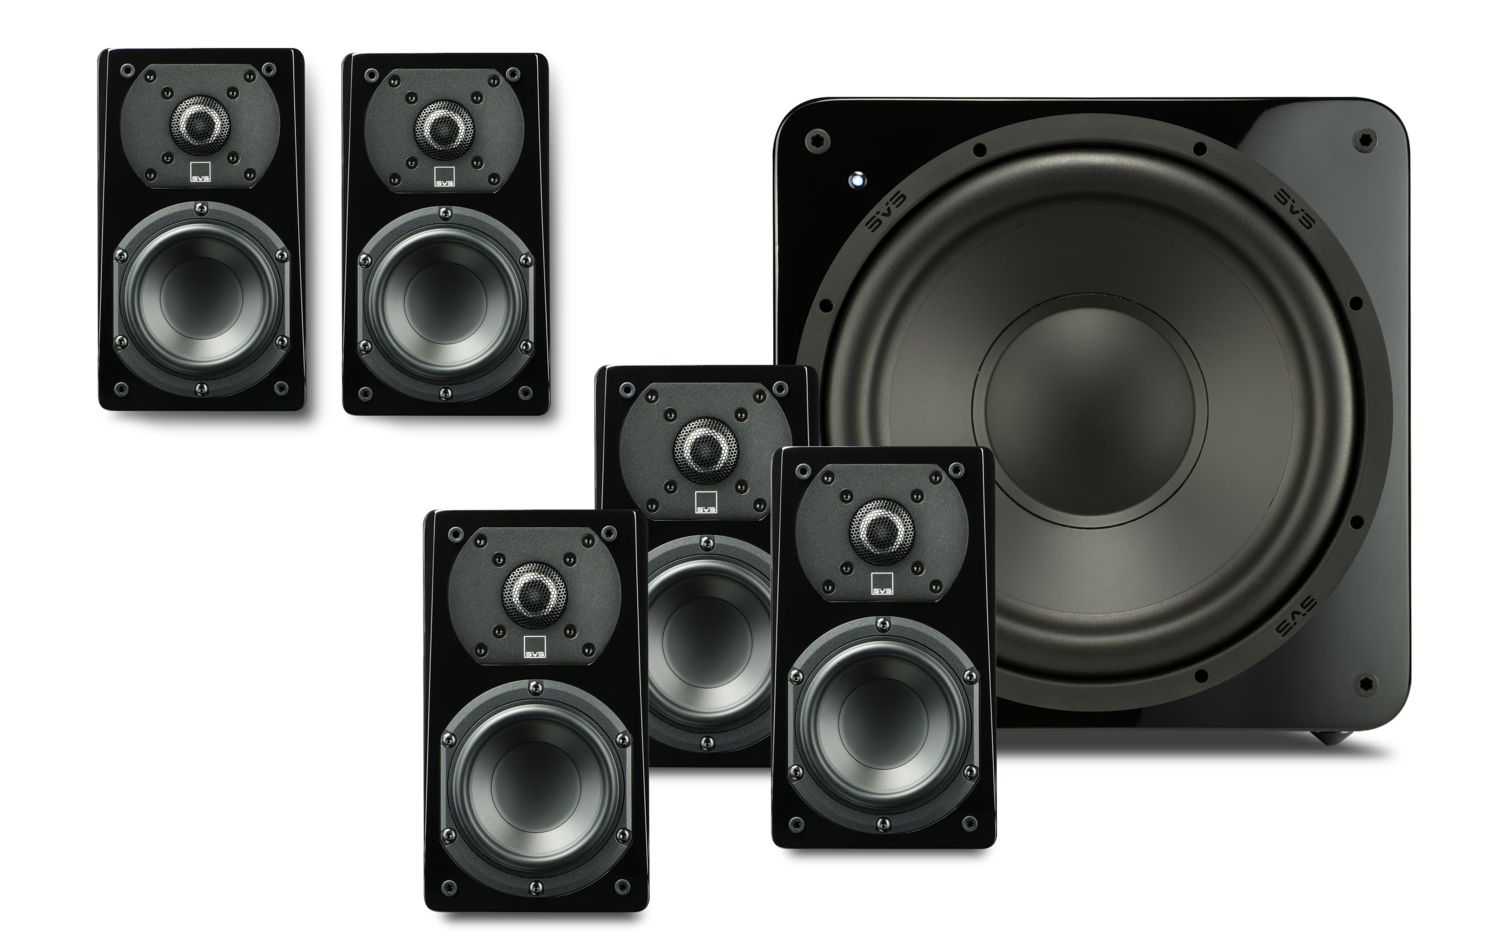 Review The Svs Prime Satellite 51 Speaker System Supreme Sound